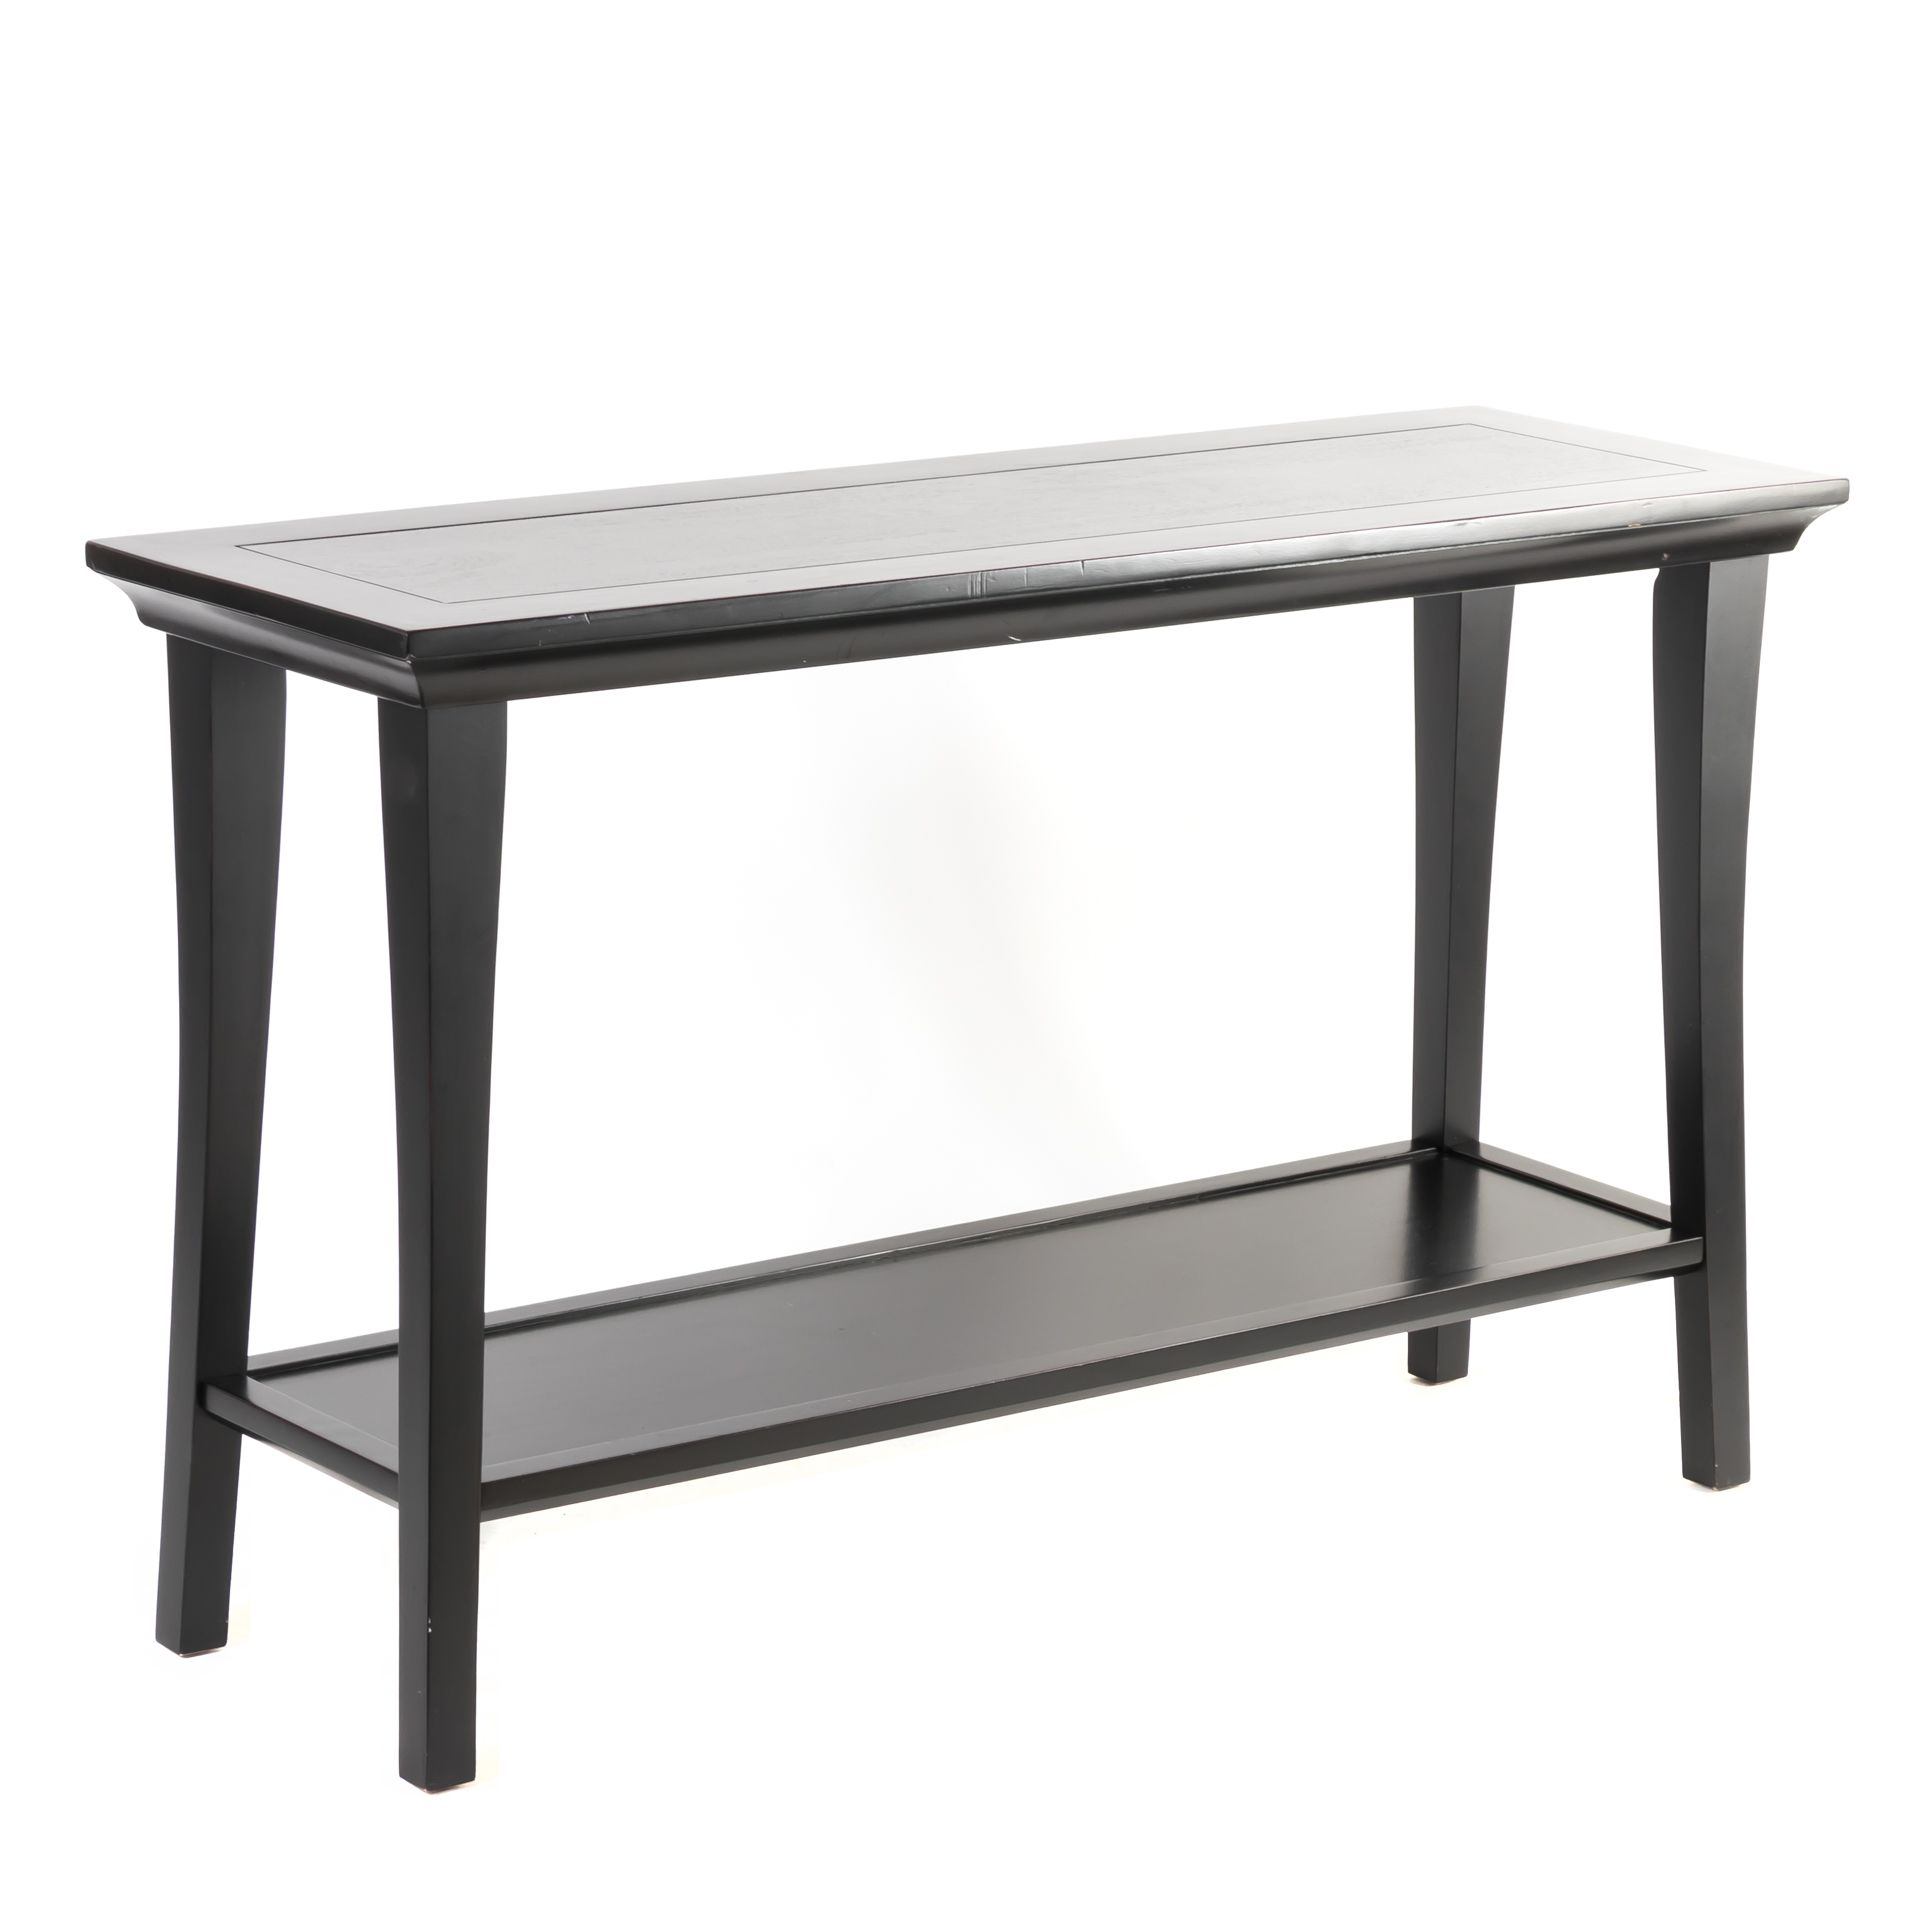 This Pottery Barn Console Table From The Metropolitan